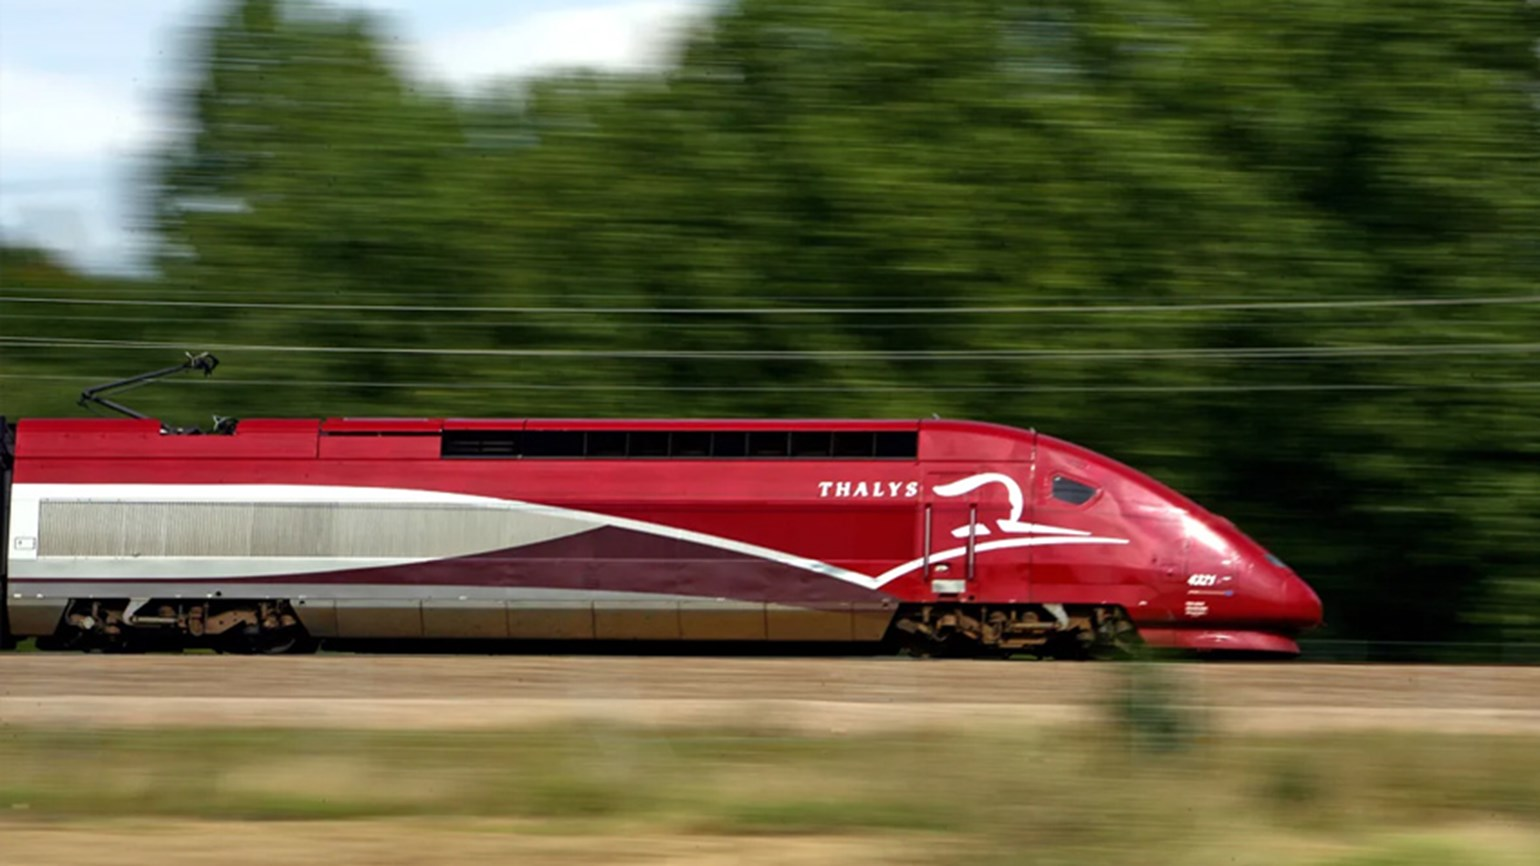 Thalys offering instant corporate discounts for October